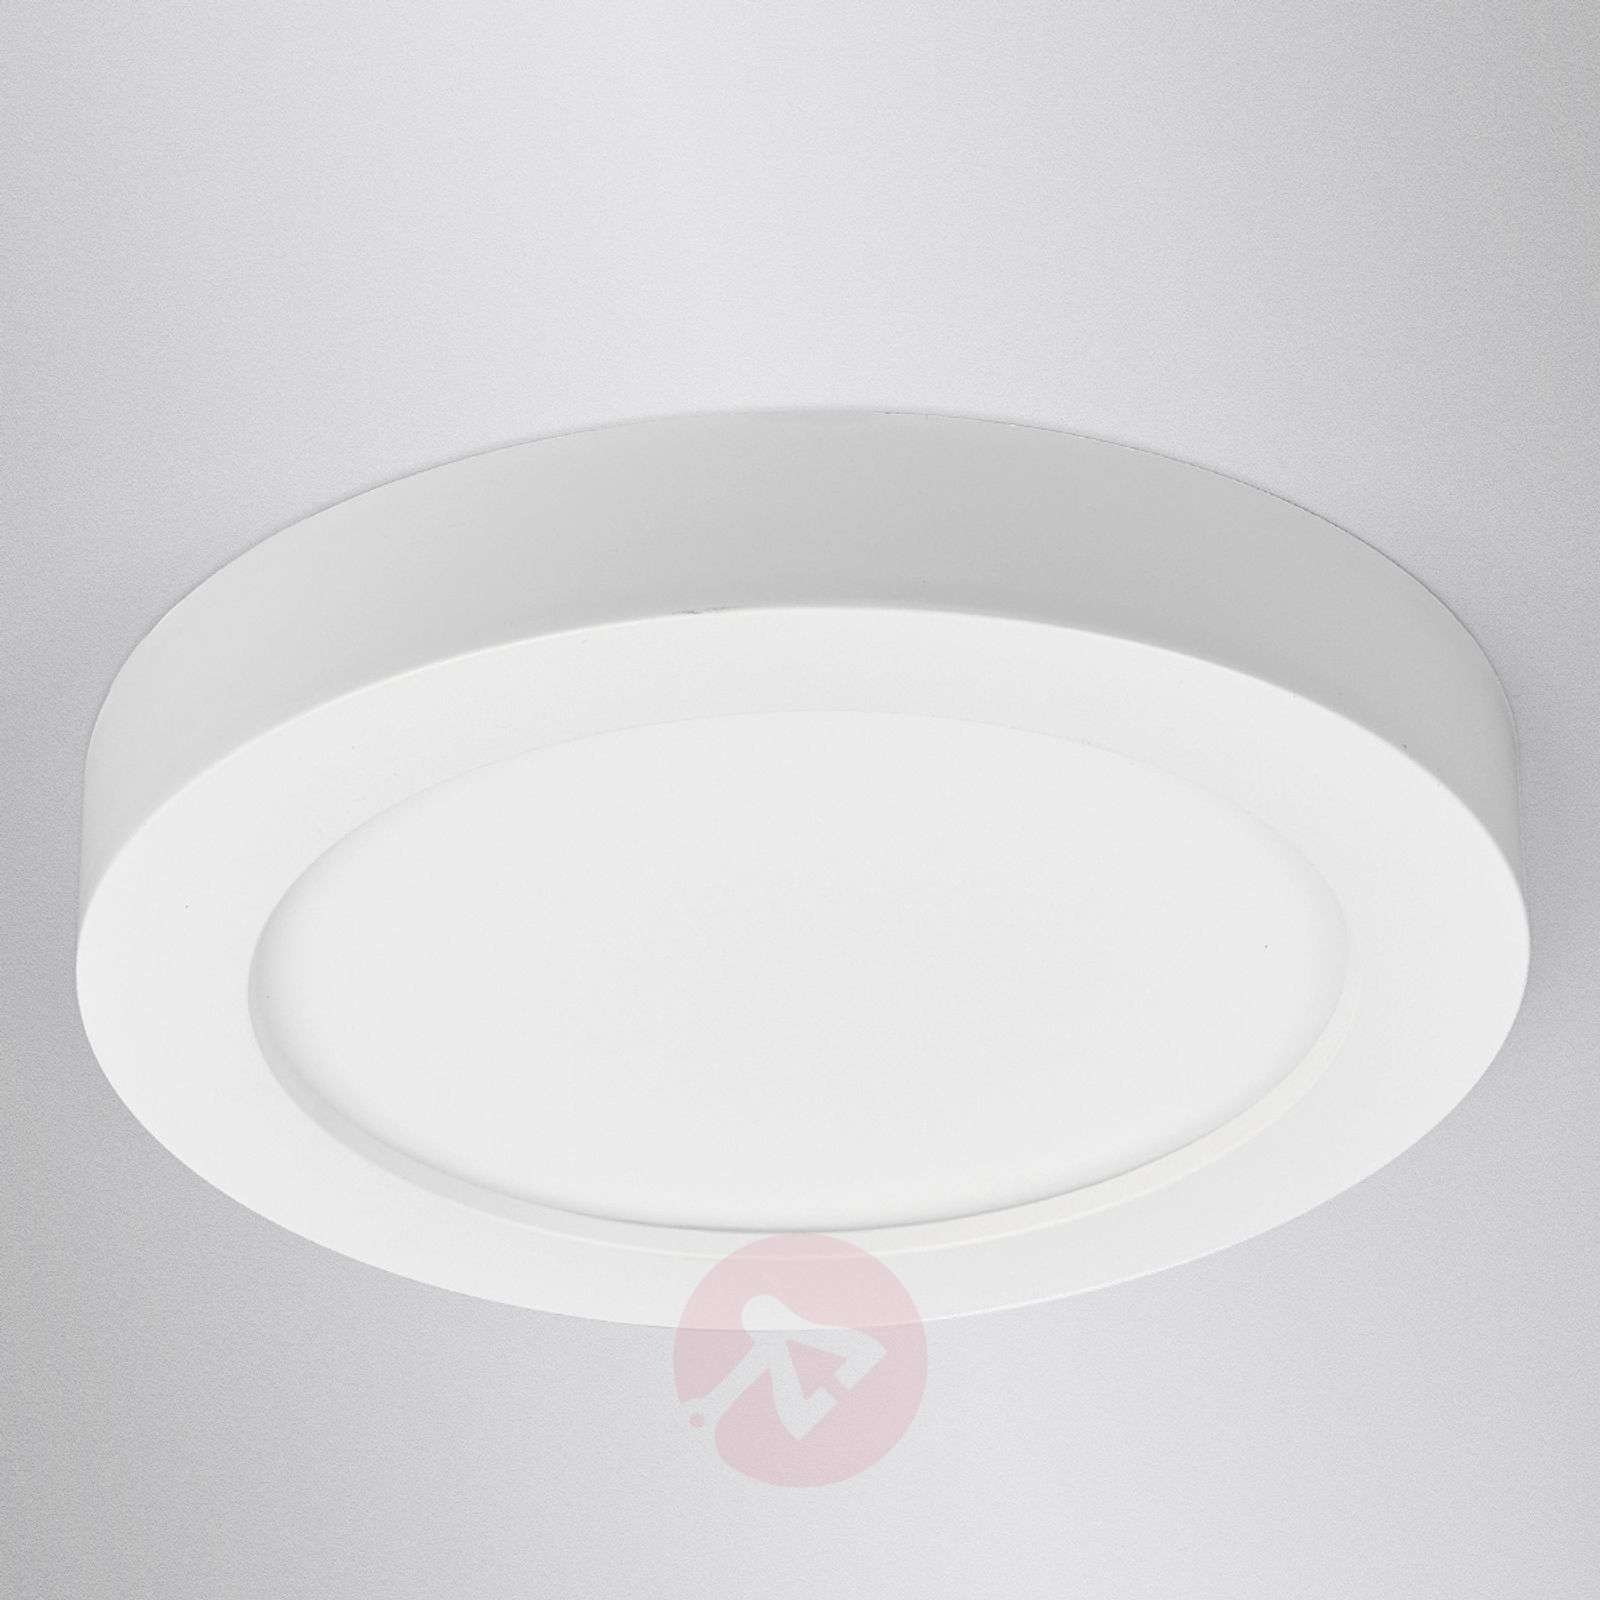 LED ceiling light Esra in white, IP44-9978021-016